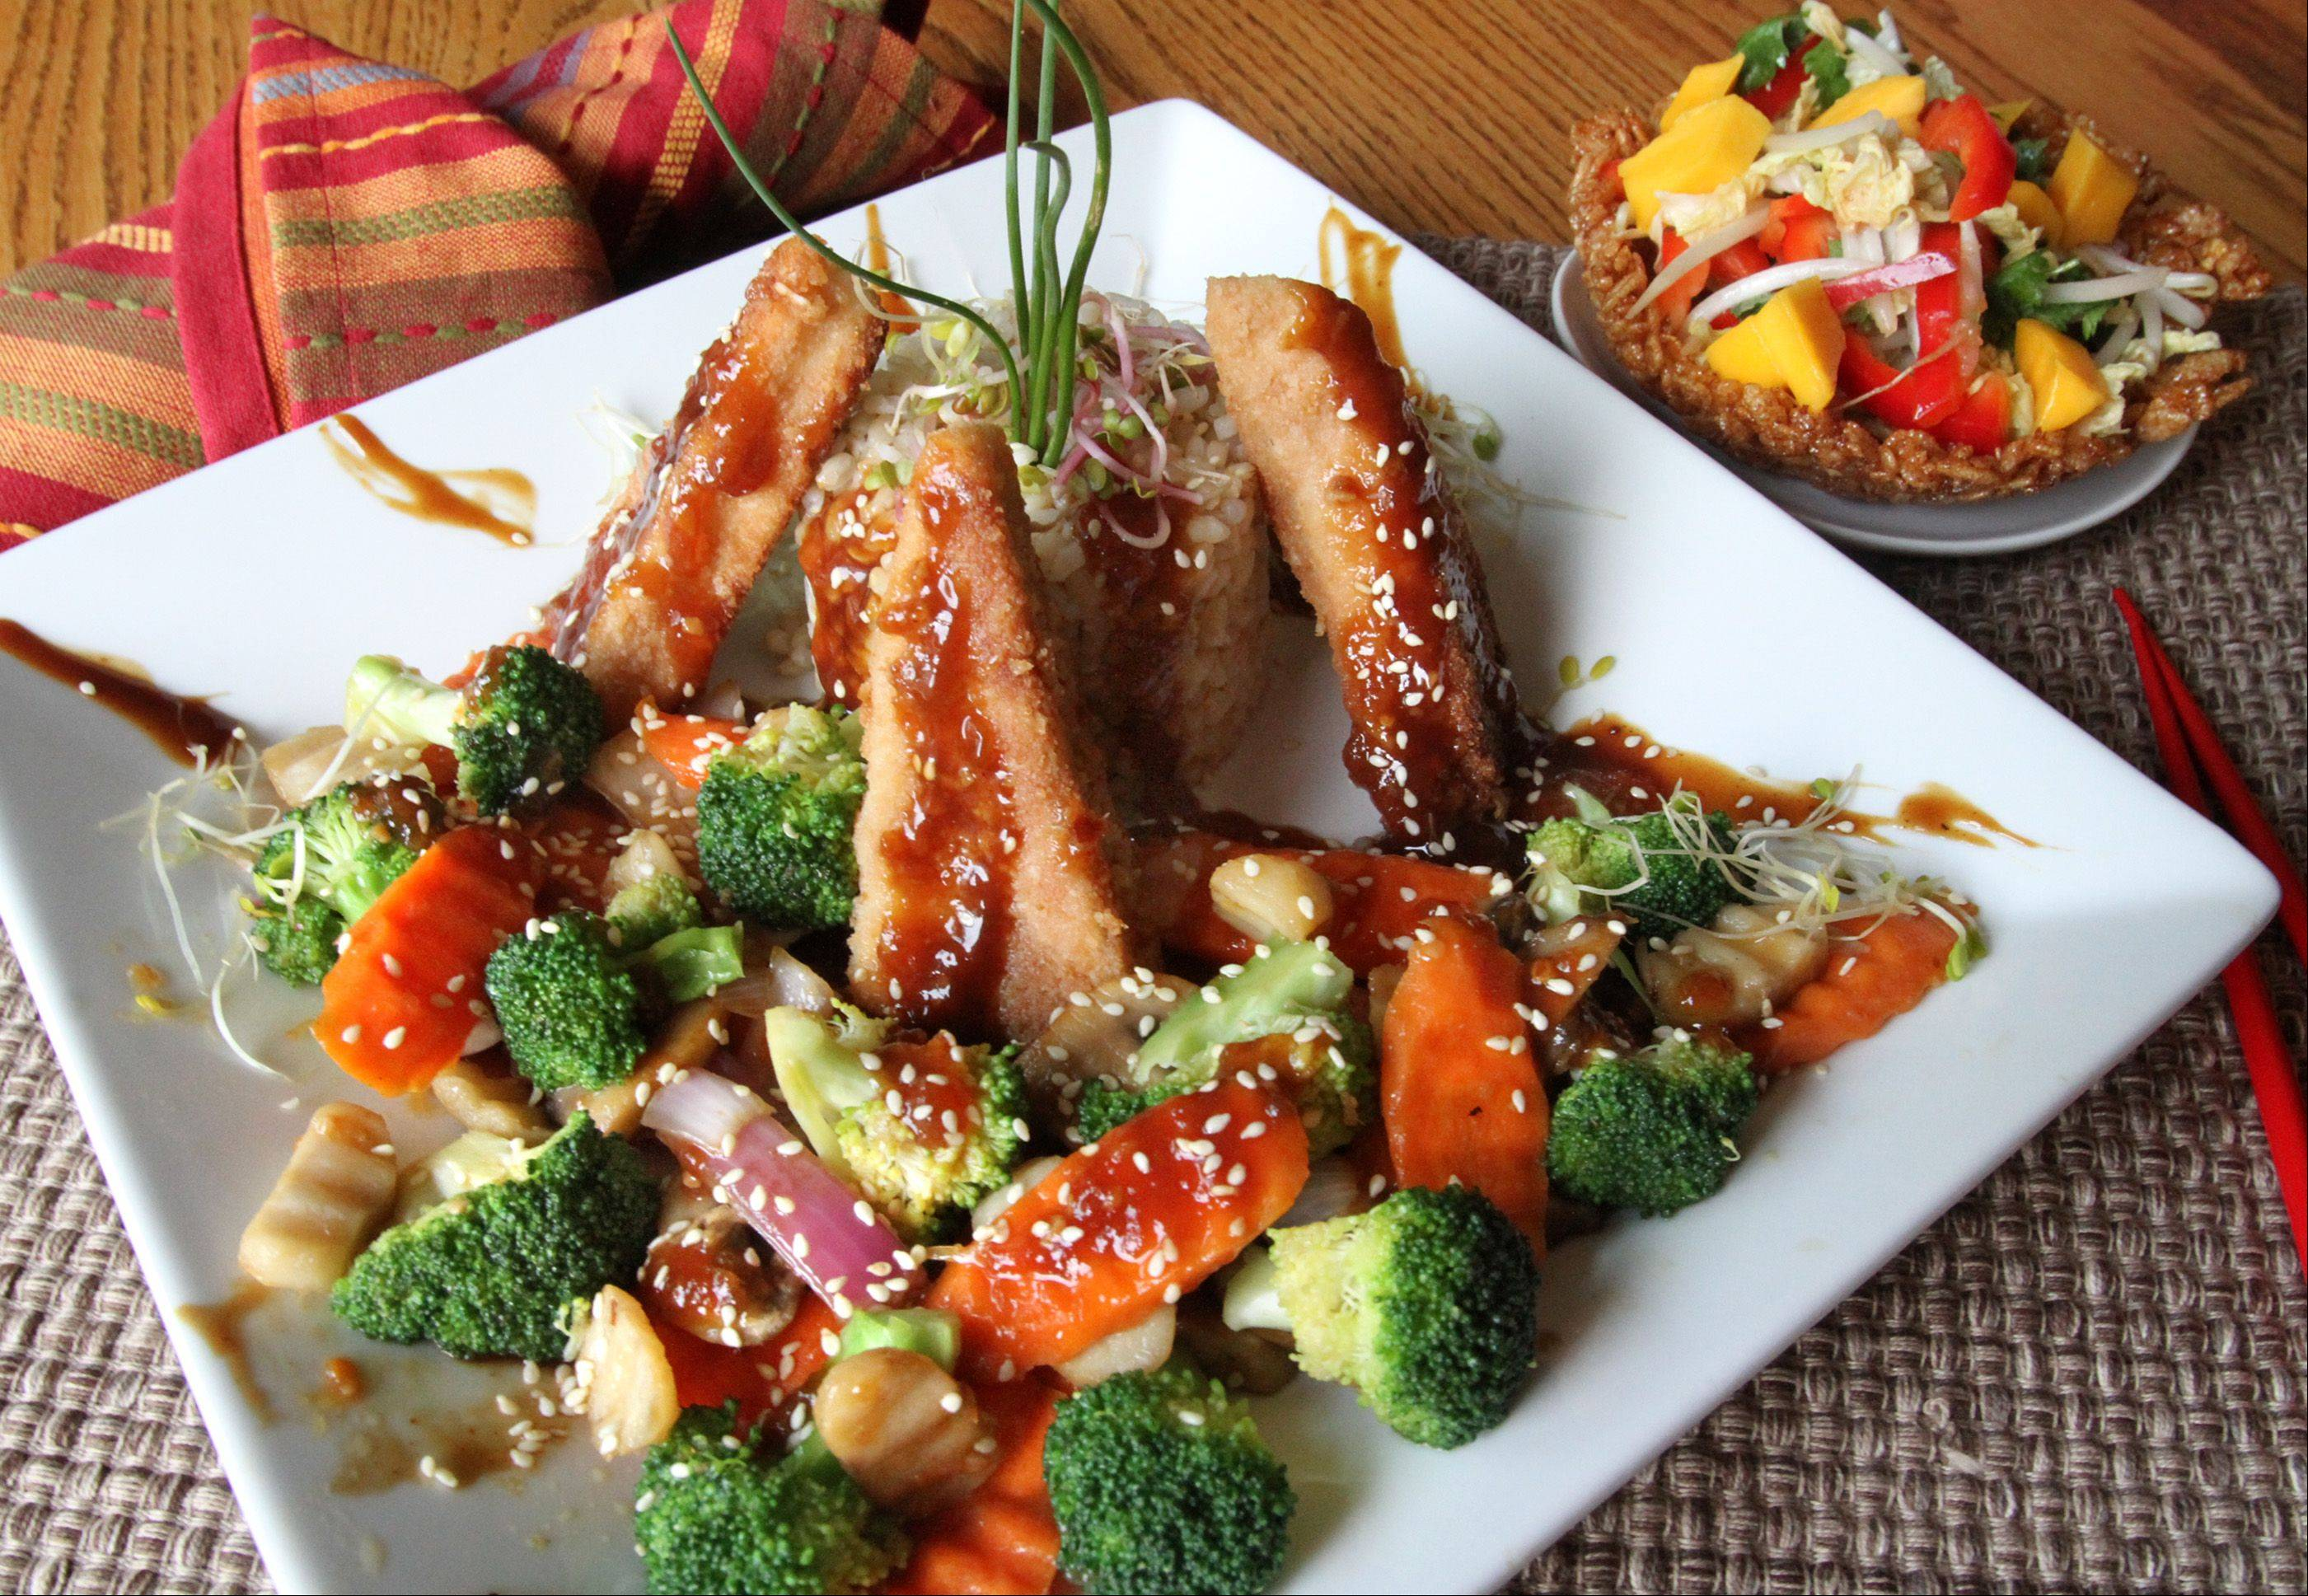 Joe Moninski created a stir-fry dish using tofu, crispy rice cereal, broccoli and mango chutney.